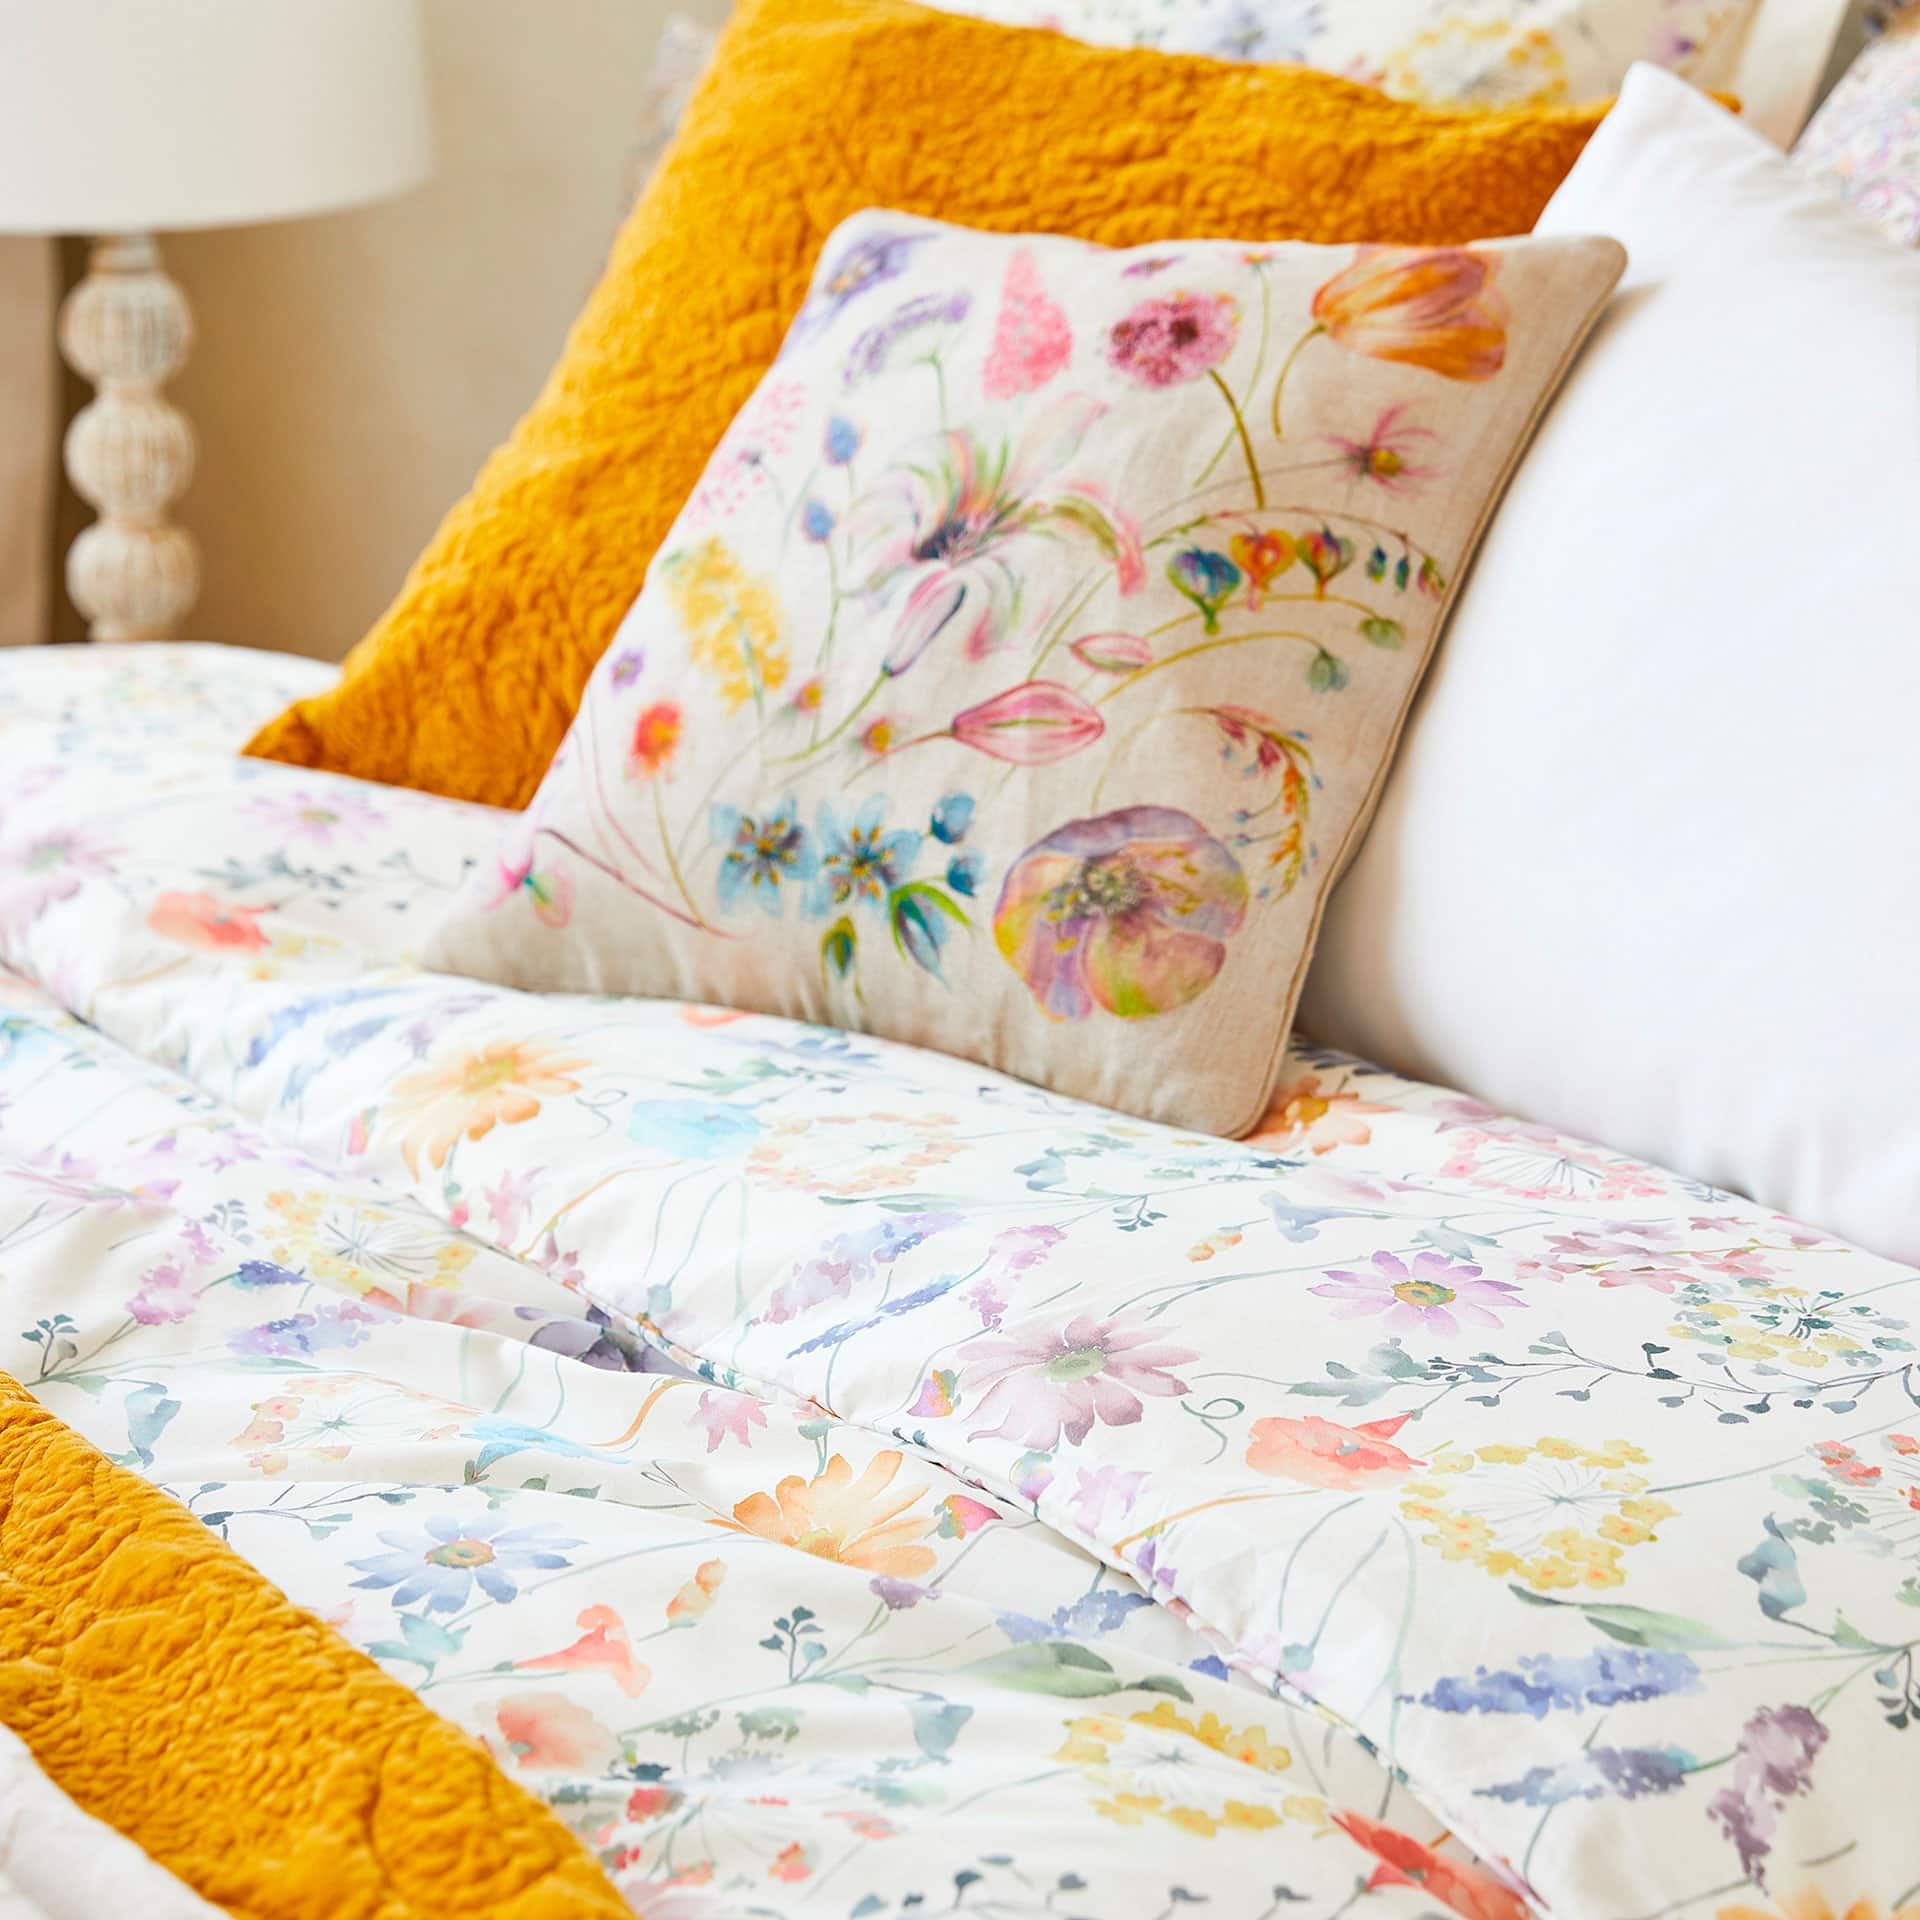 watercolour floral print duvet cover  duvet covers  bedroom  -  image  of the product watercolour floral print duvet cover